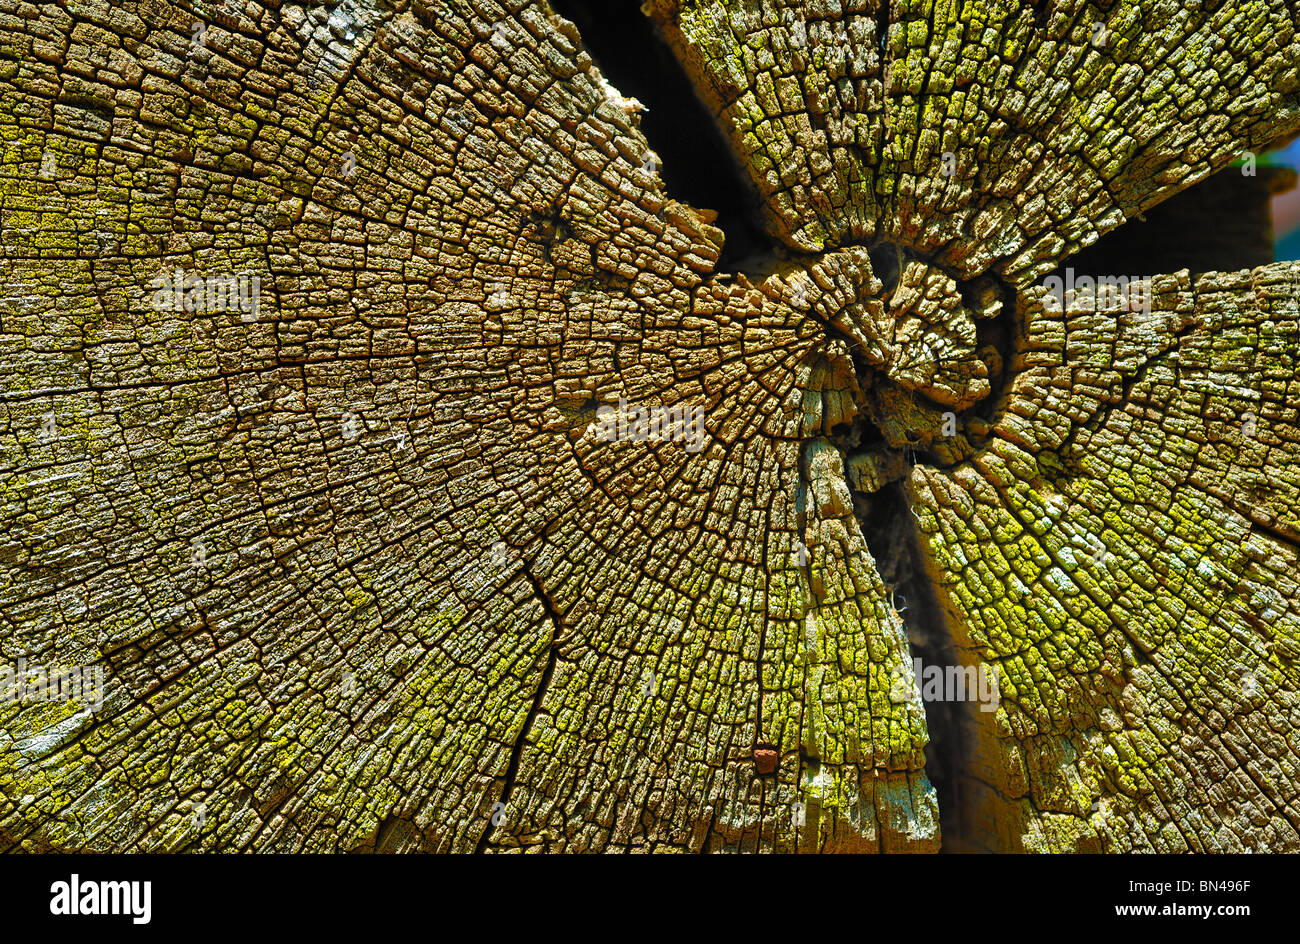 Pattern at the end of a log in a log cabin at Westville, near Plains, Georgia, United States of America - Stock Image